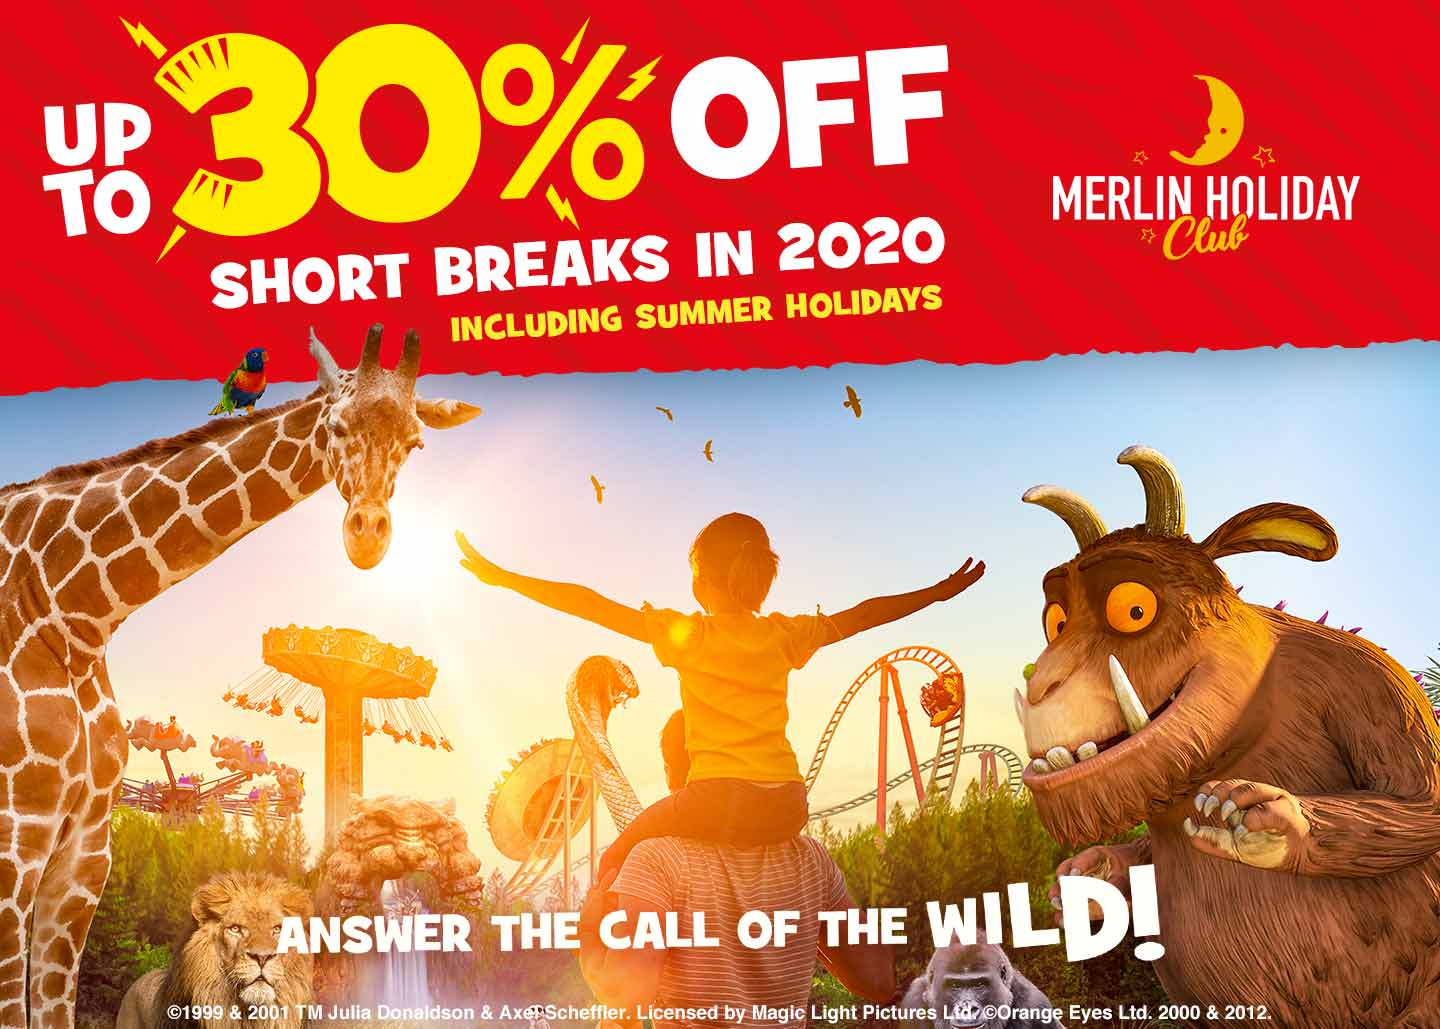 Save up to 30% on 2020 stays with your Annual Pass with Chessington Holidays.